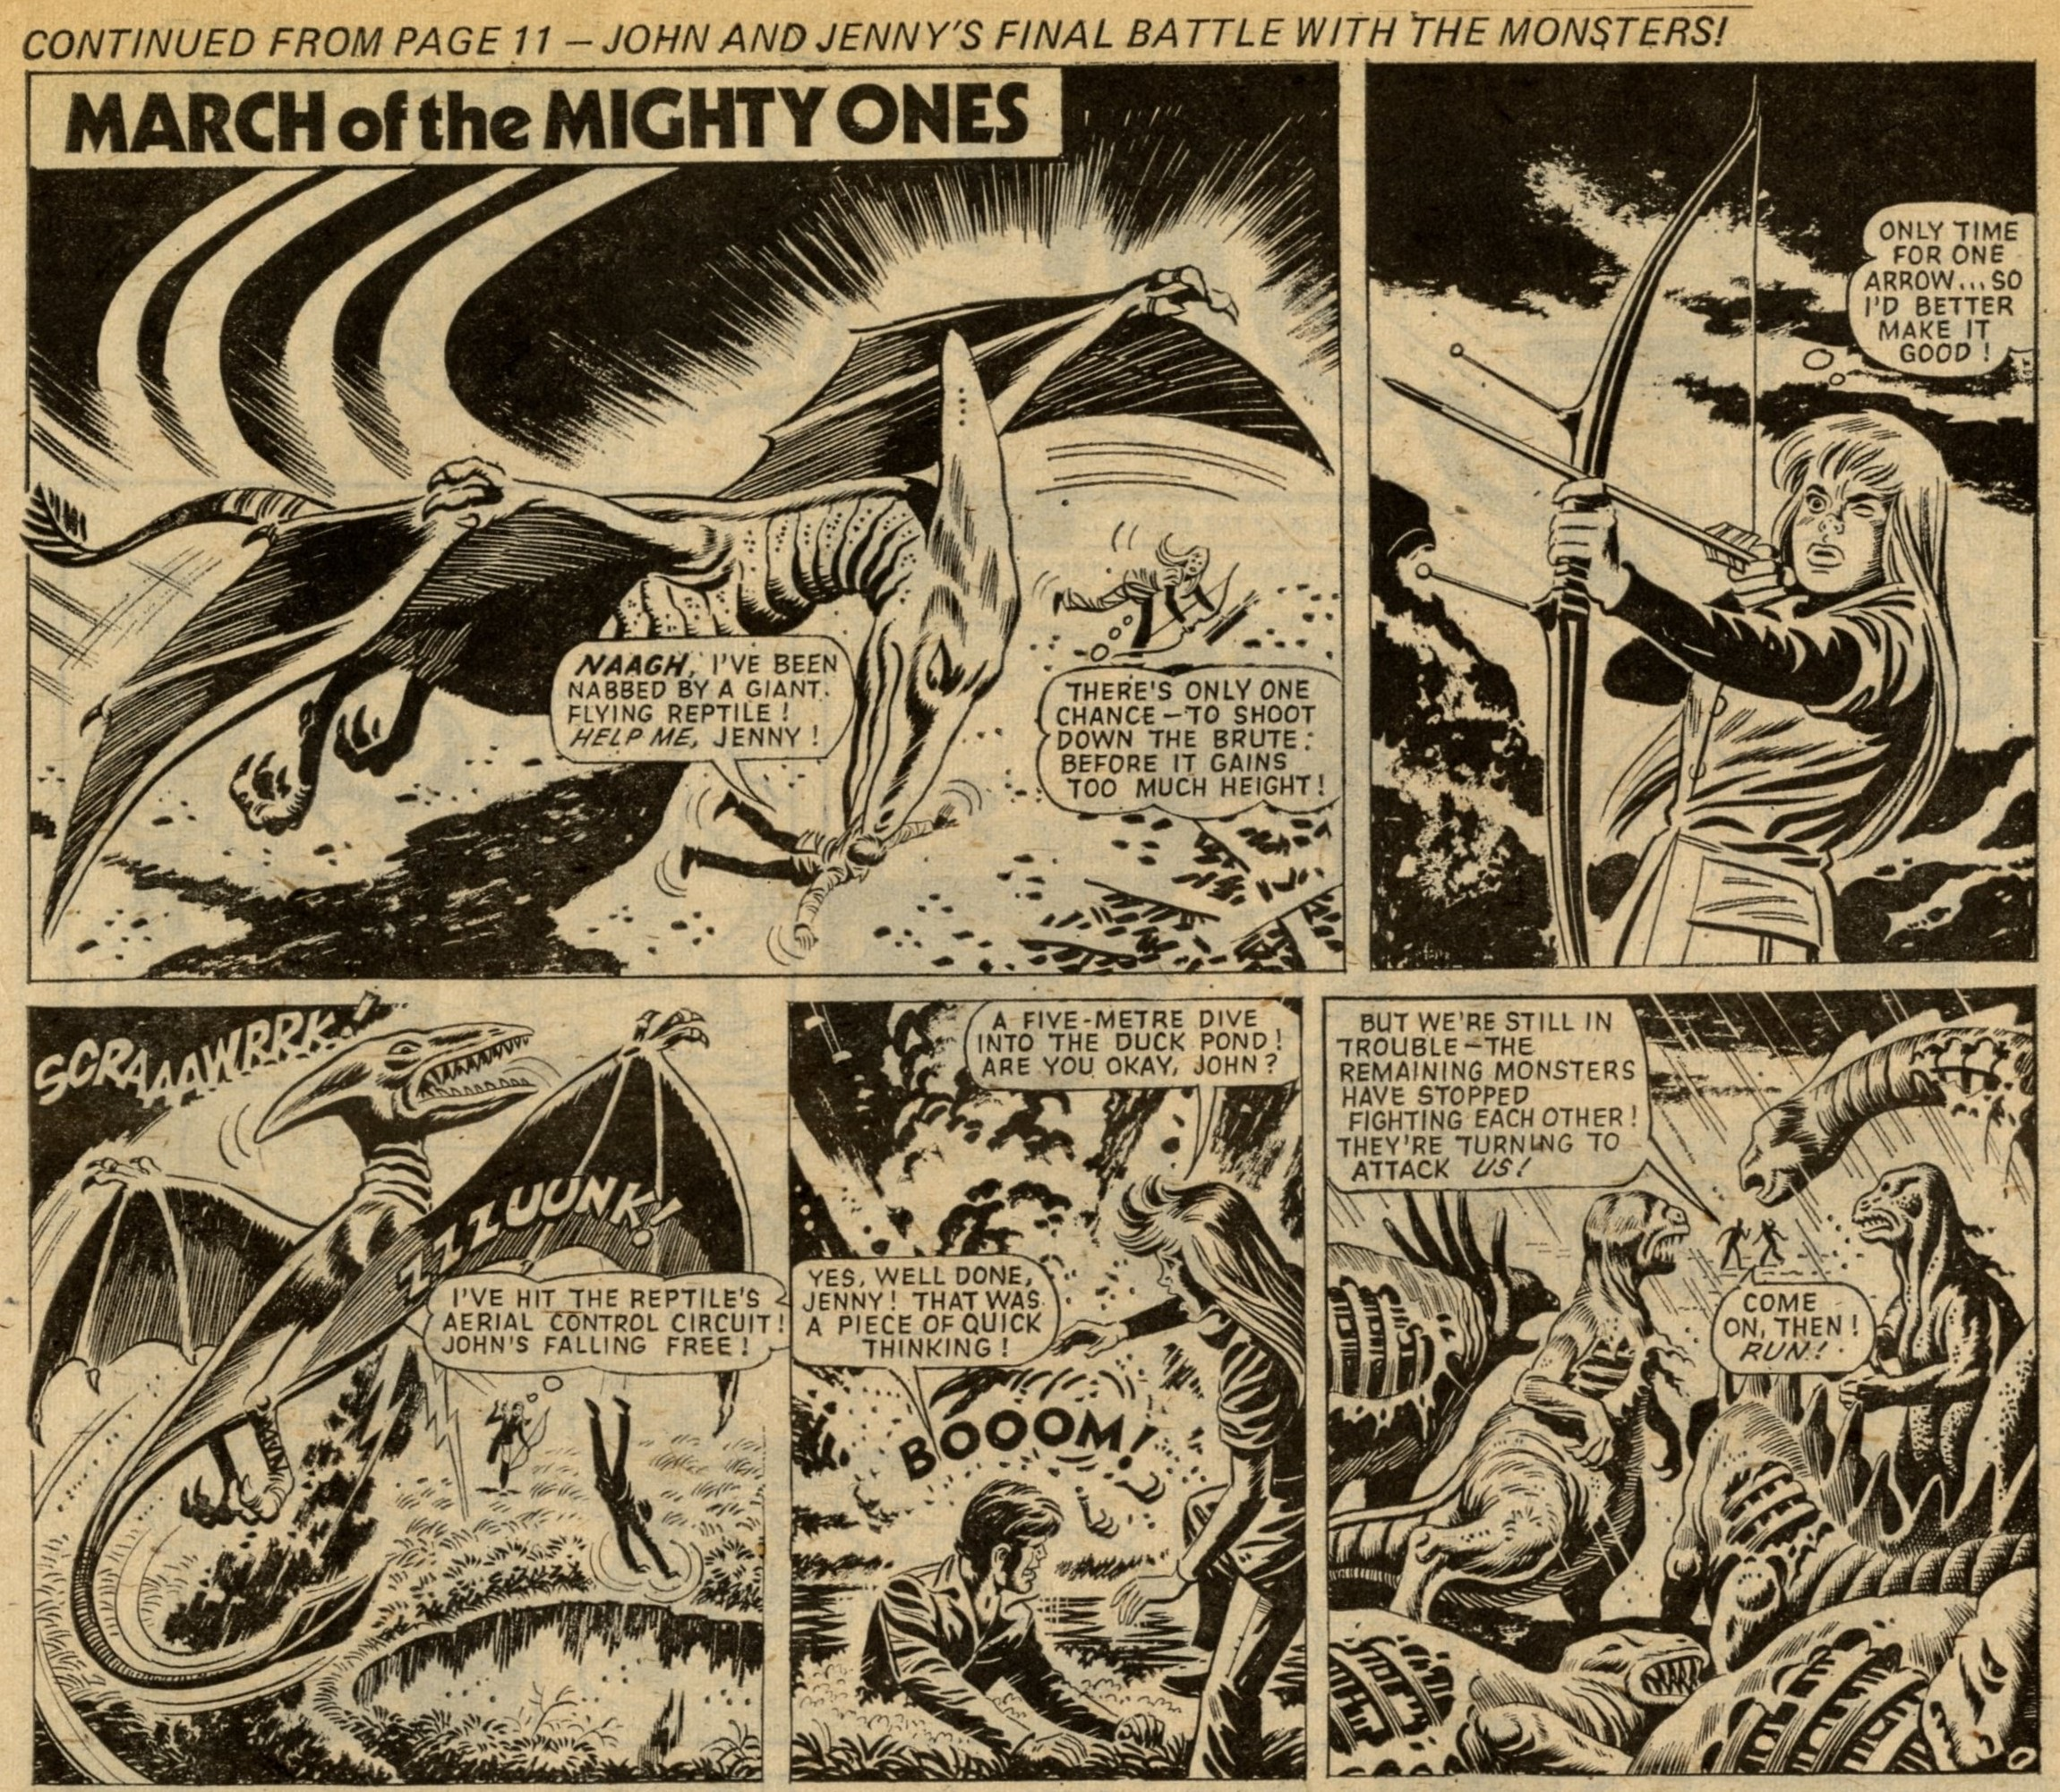 March of the Mighty Ones: Ron Turner (artist)